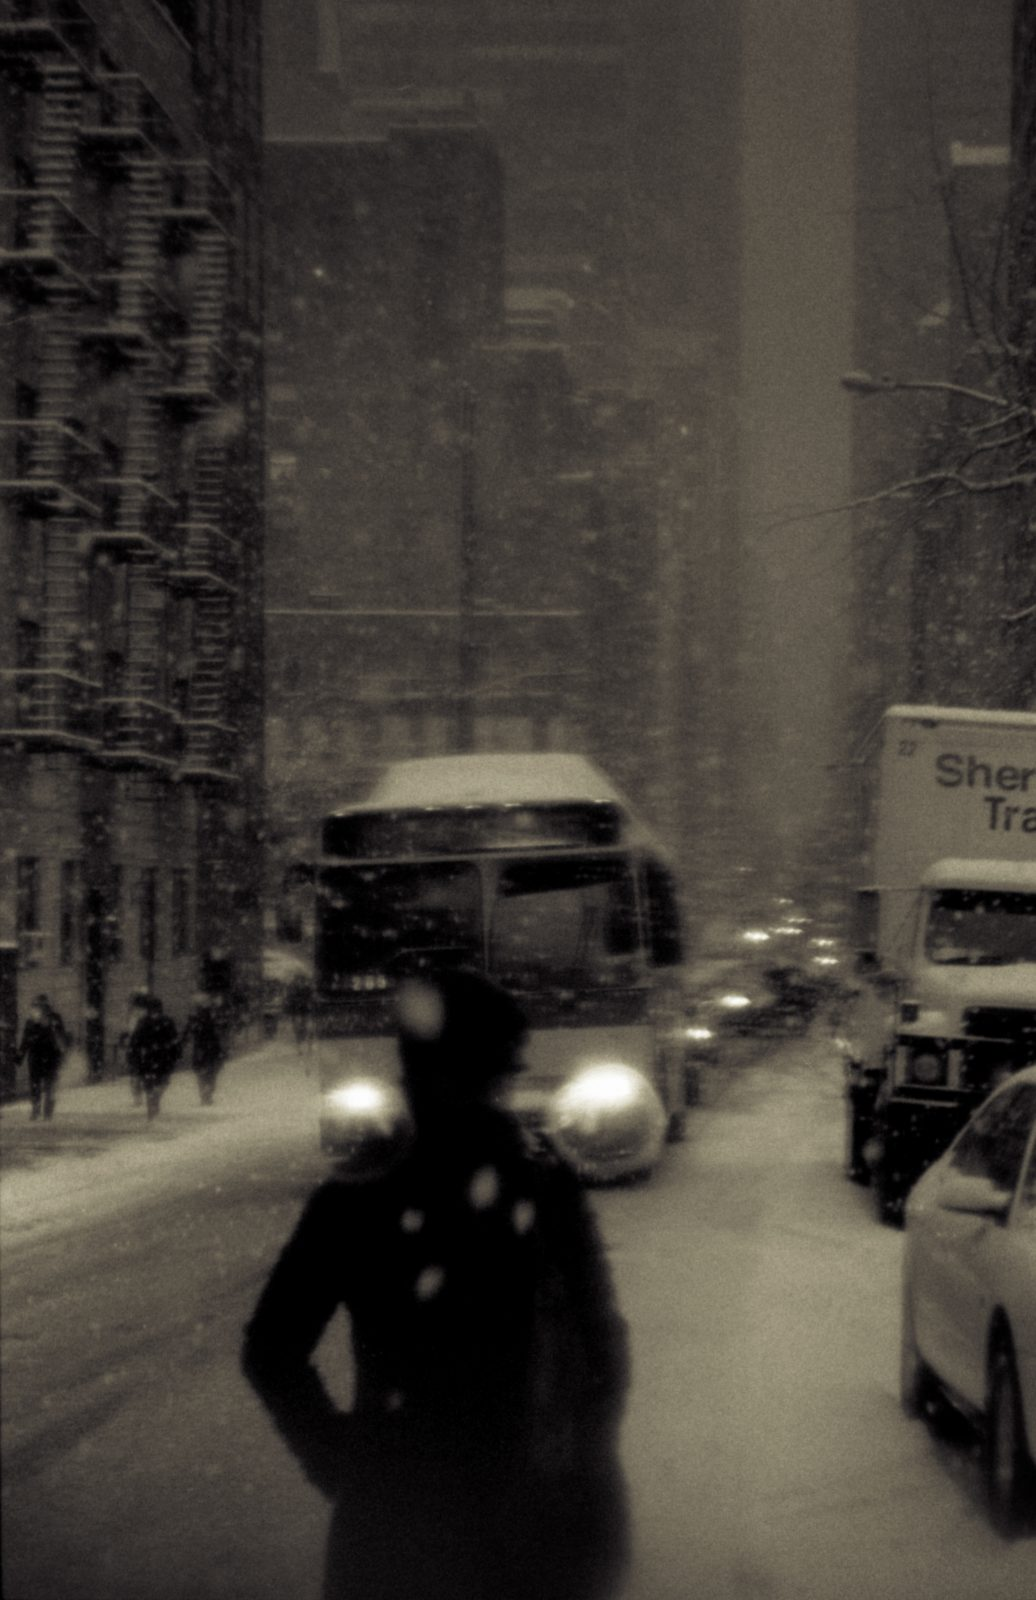 New York City snowstorm